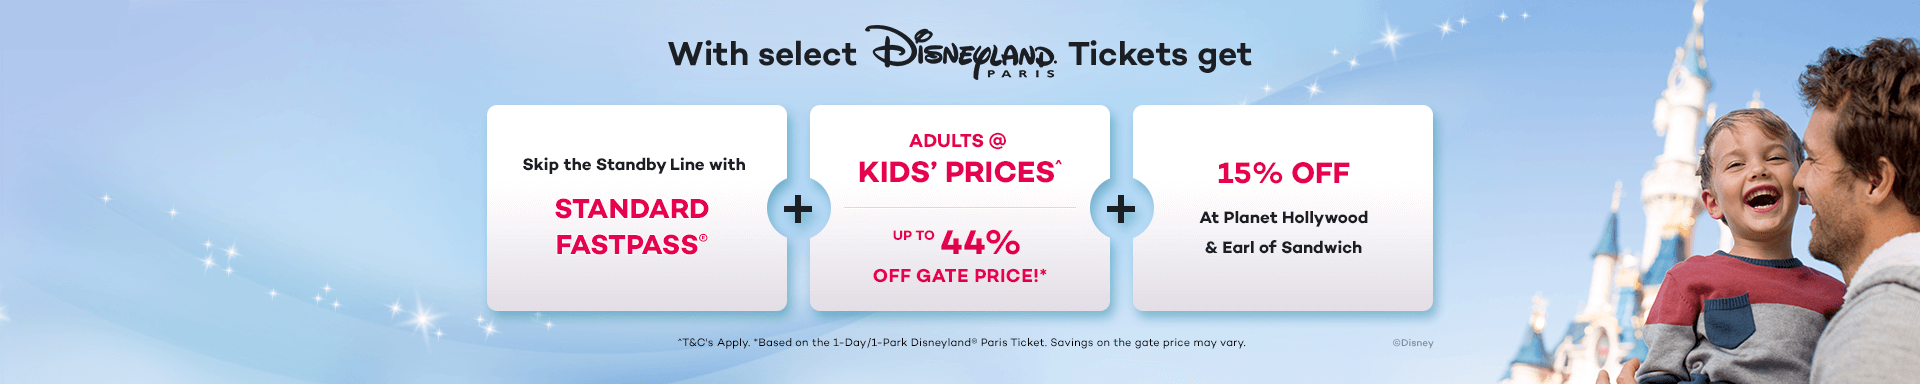 2aebe911daaf4 Save up to 44% Off the Gate Price at Disneyland Paris